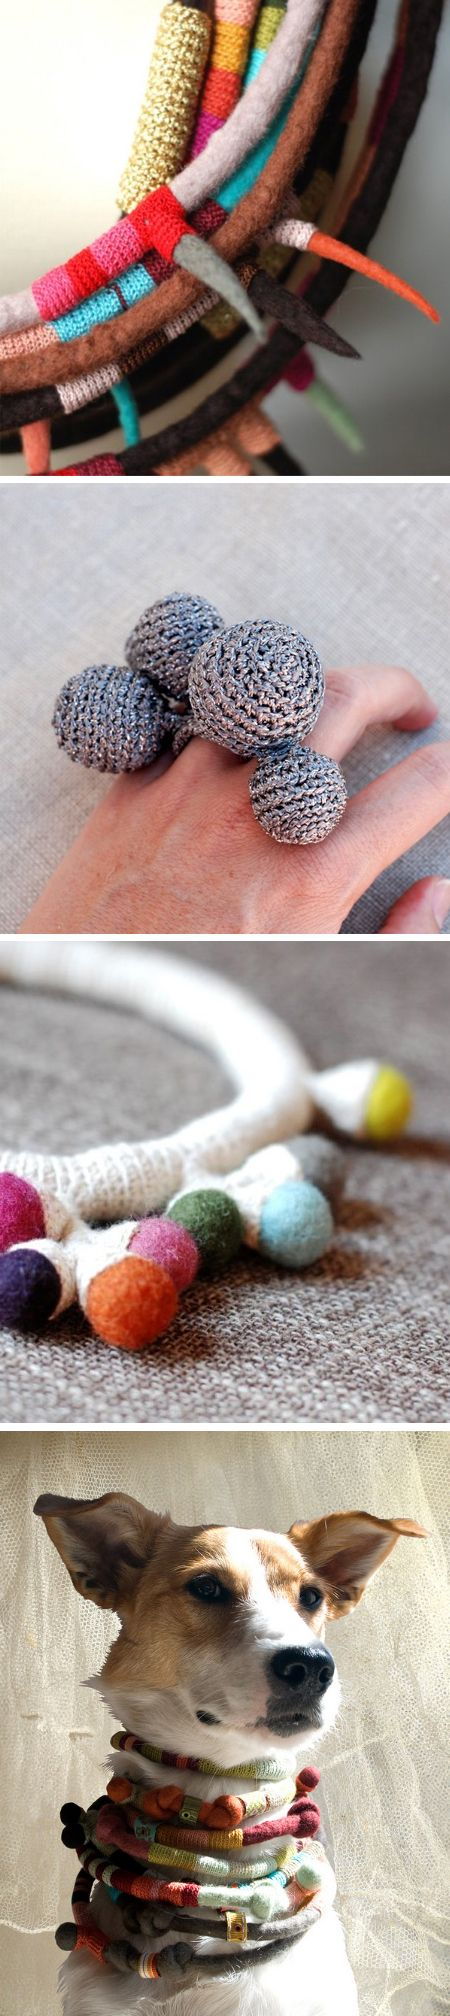 great combination of crochet, felting and wrapping!